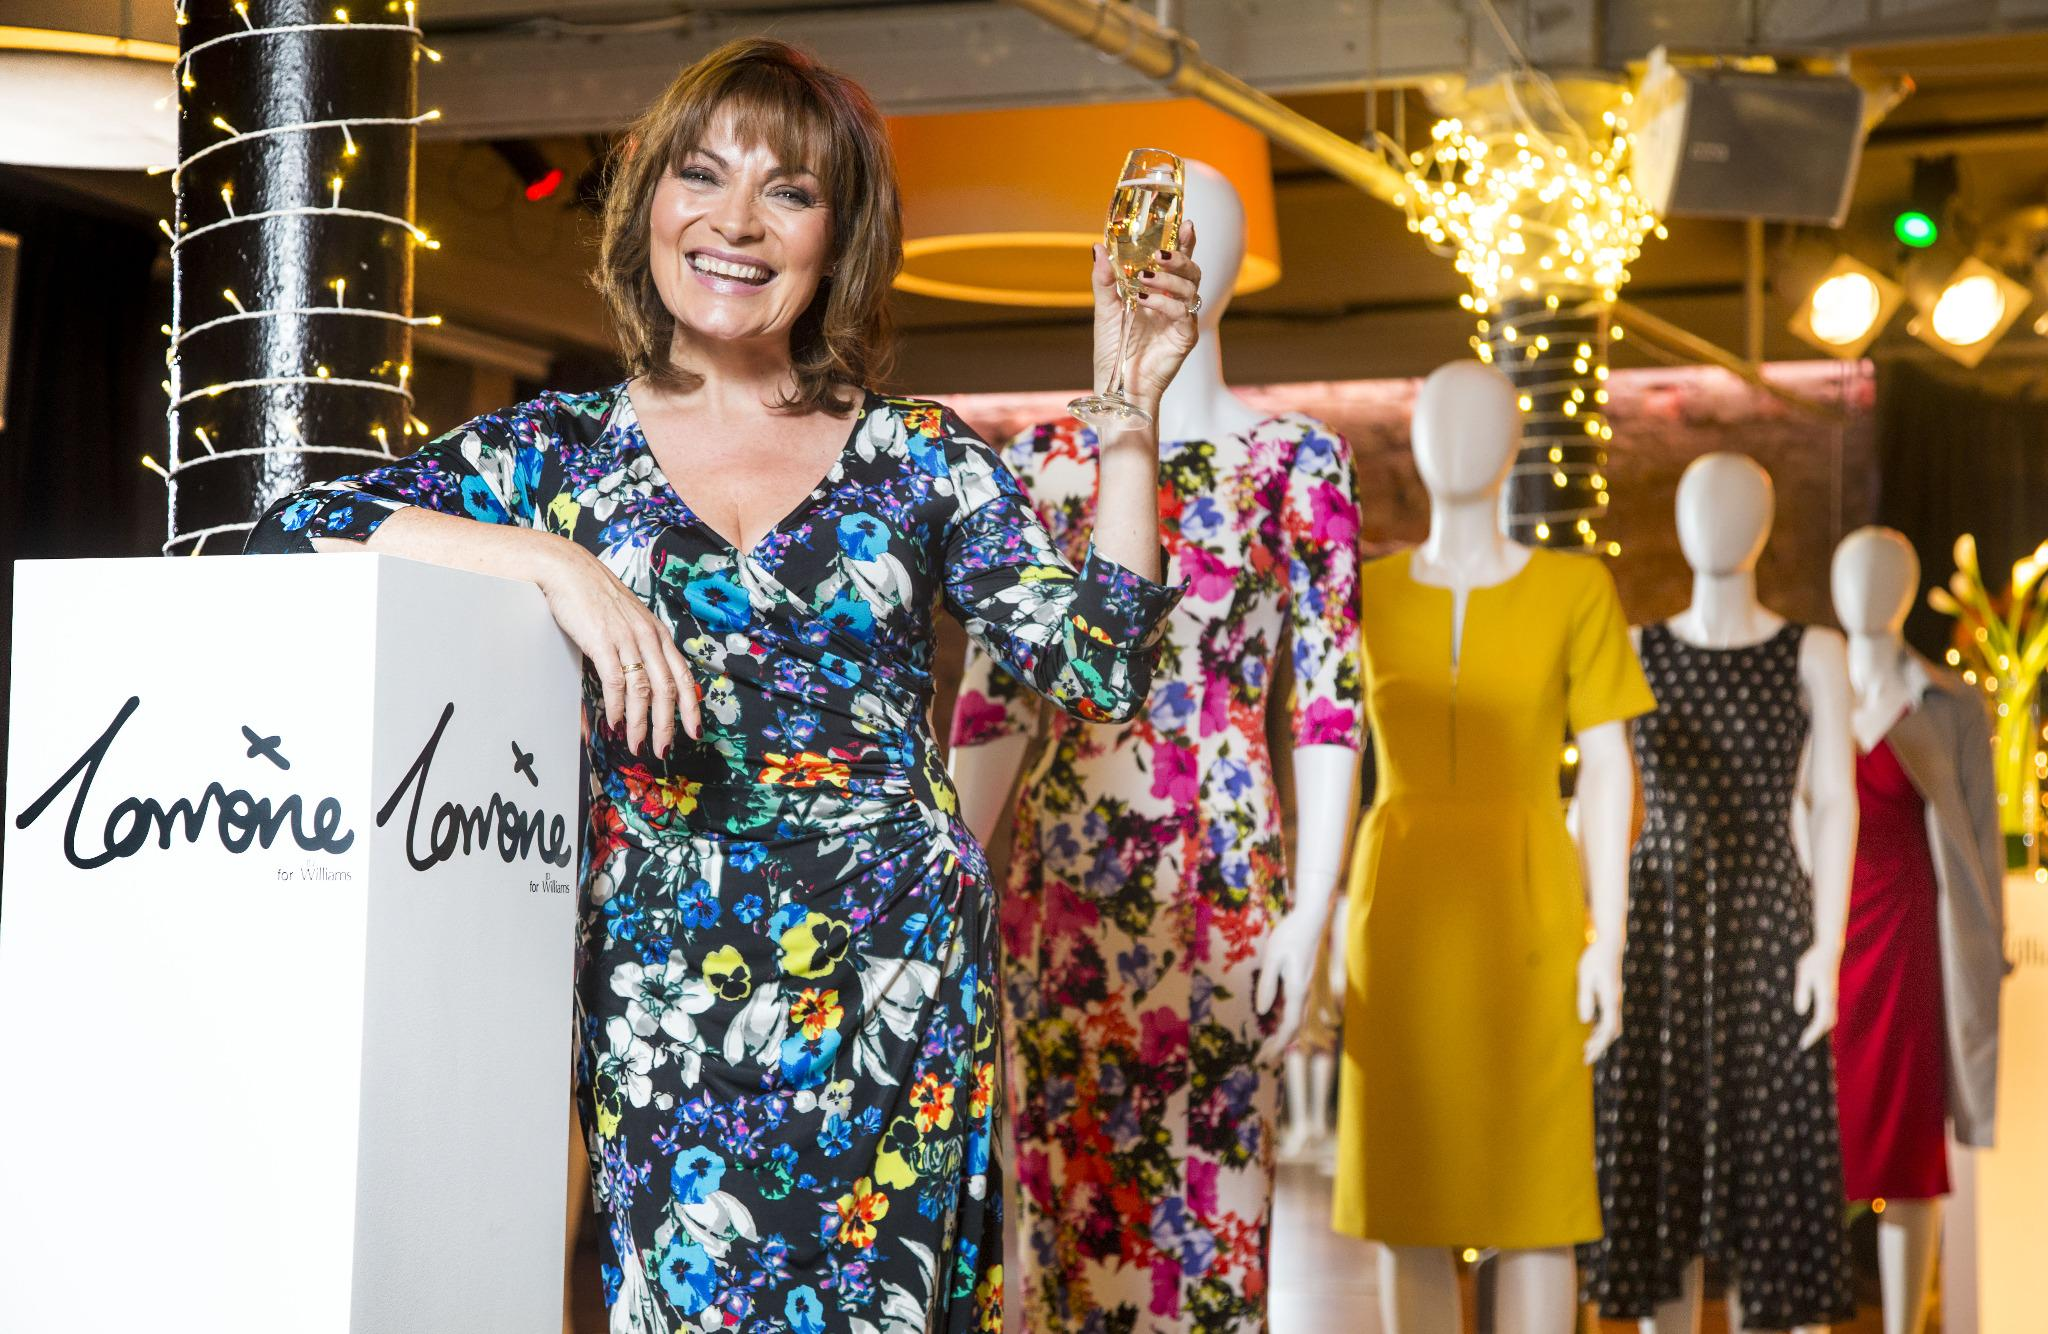 RT @scotsunstyle: TV queen @reallorraine discusses new @JDWFashion range, style icons & faux pas: http://t.co/79HZxjSRFU  #NBrownSS15 http:…